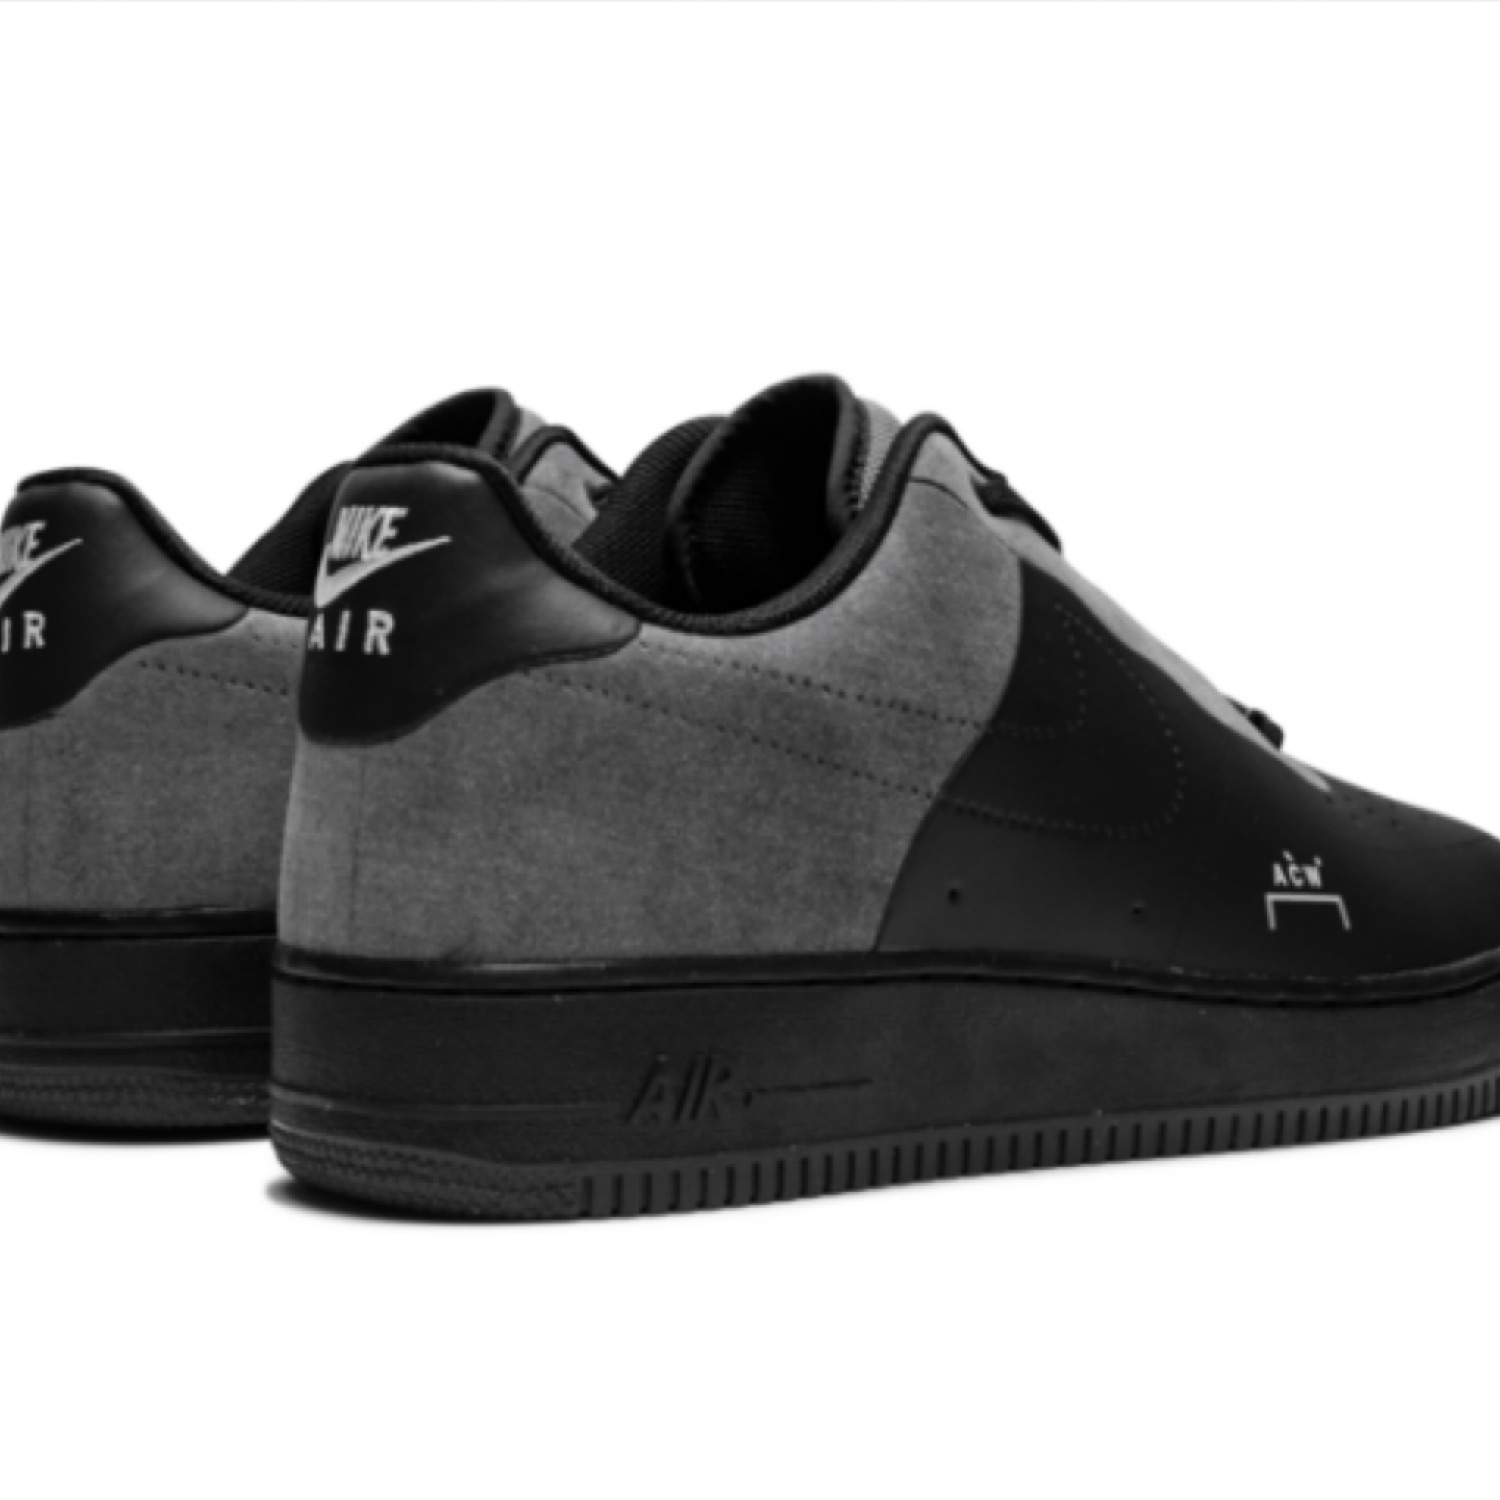 A-Cold-Wall X Nike Air Force 1 Low Black